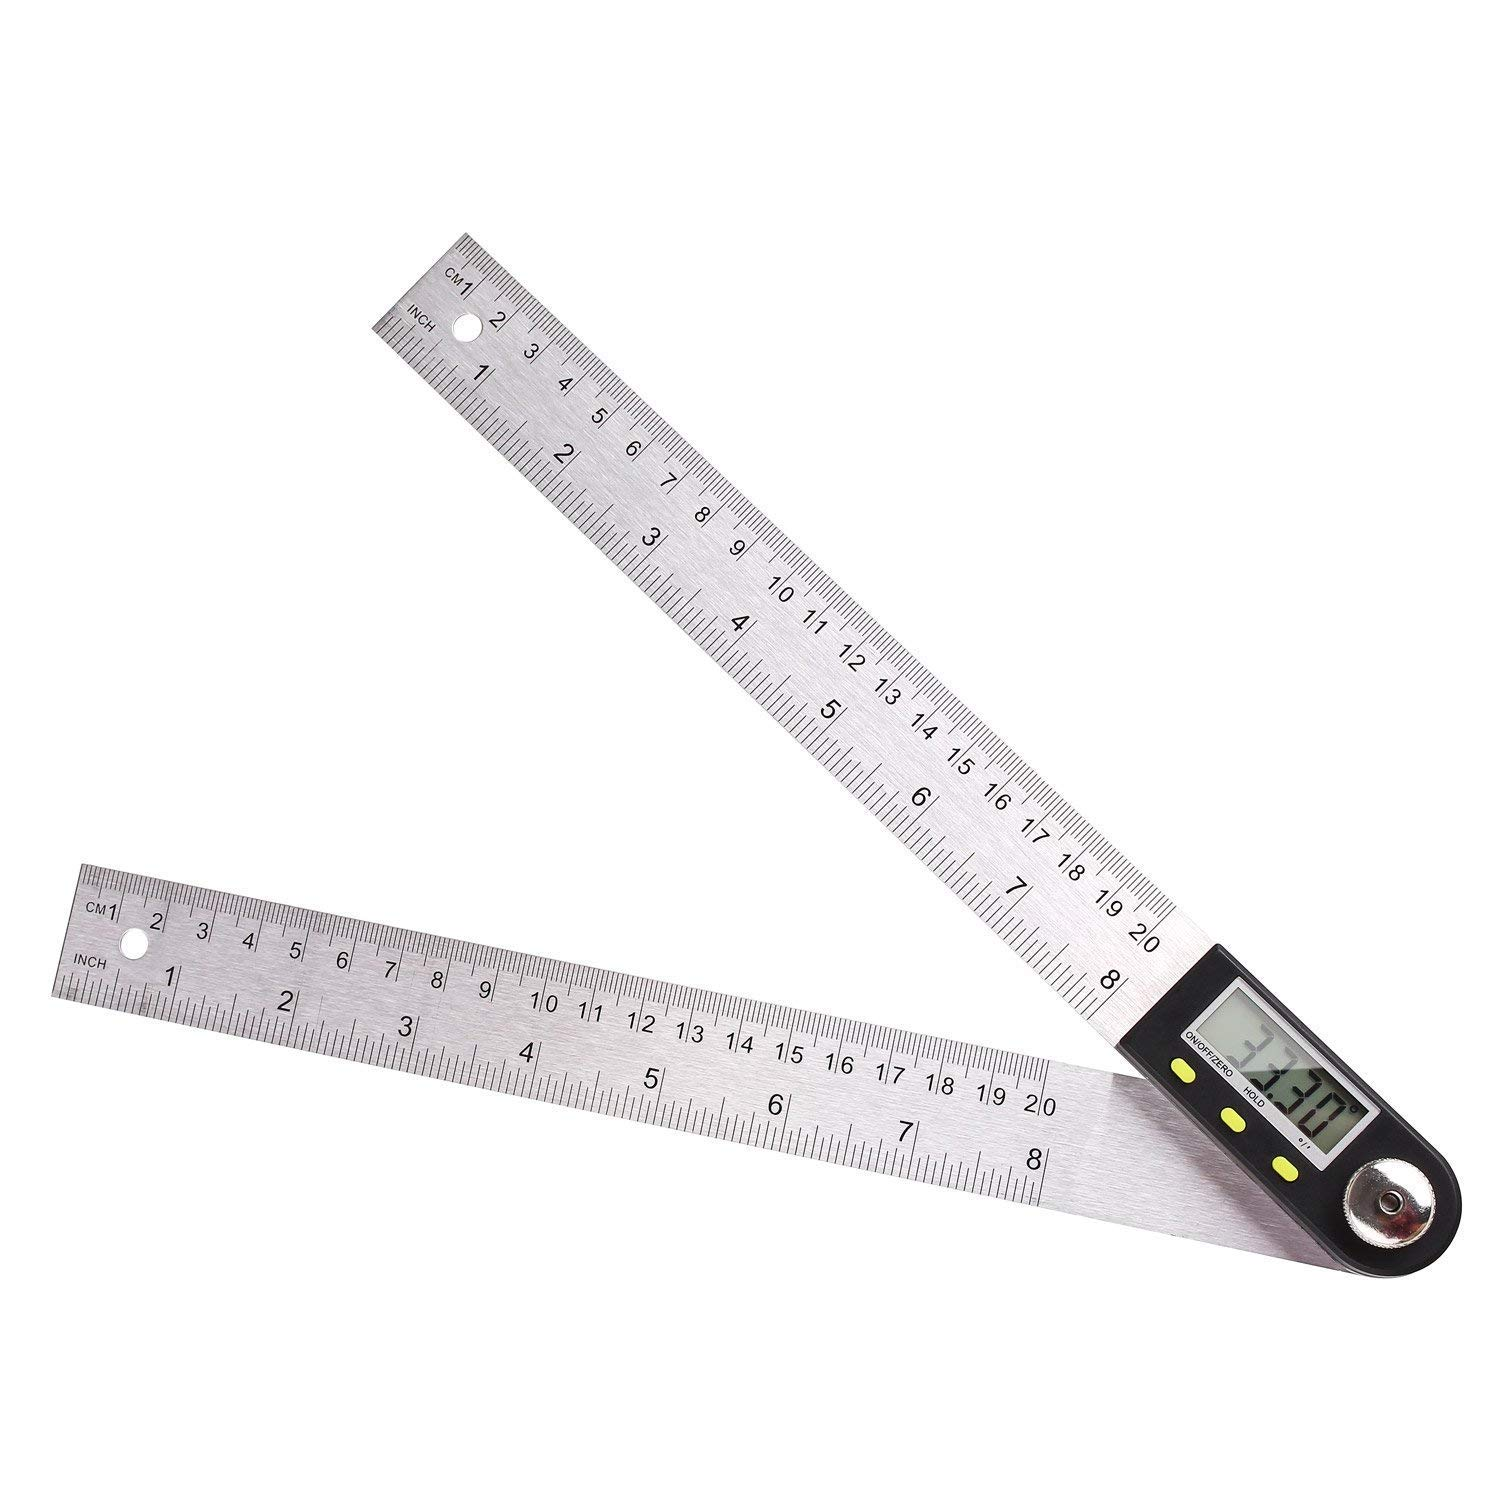 2in1 Digital LCD Angle Finder Ruler Trend 400mm 225° Gauge Measuring Tool Ruler